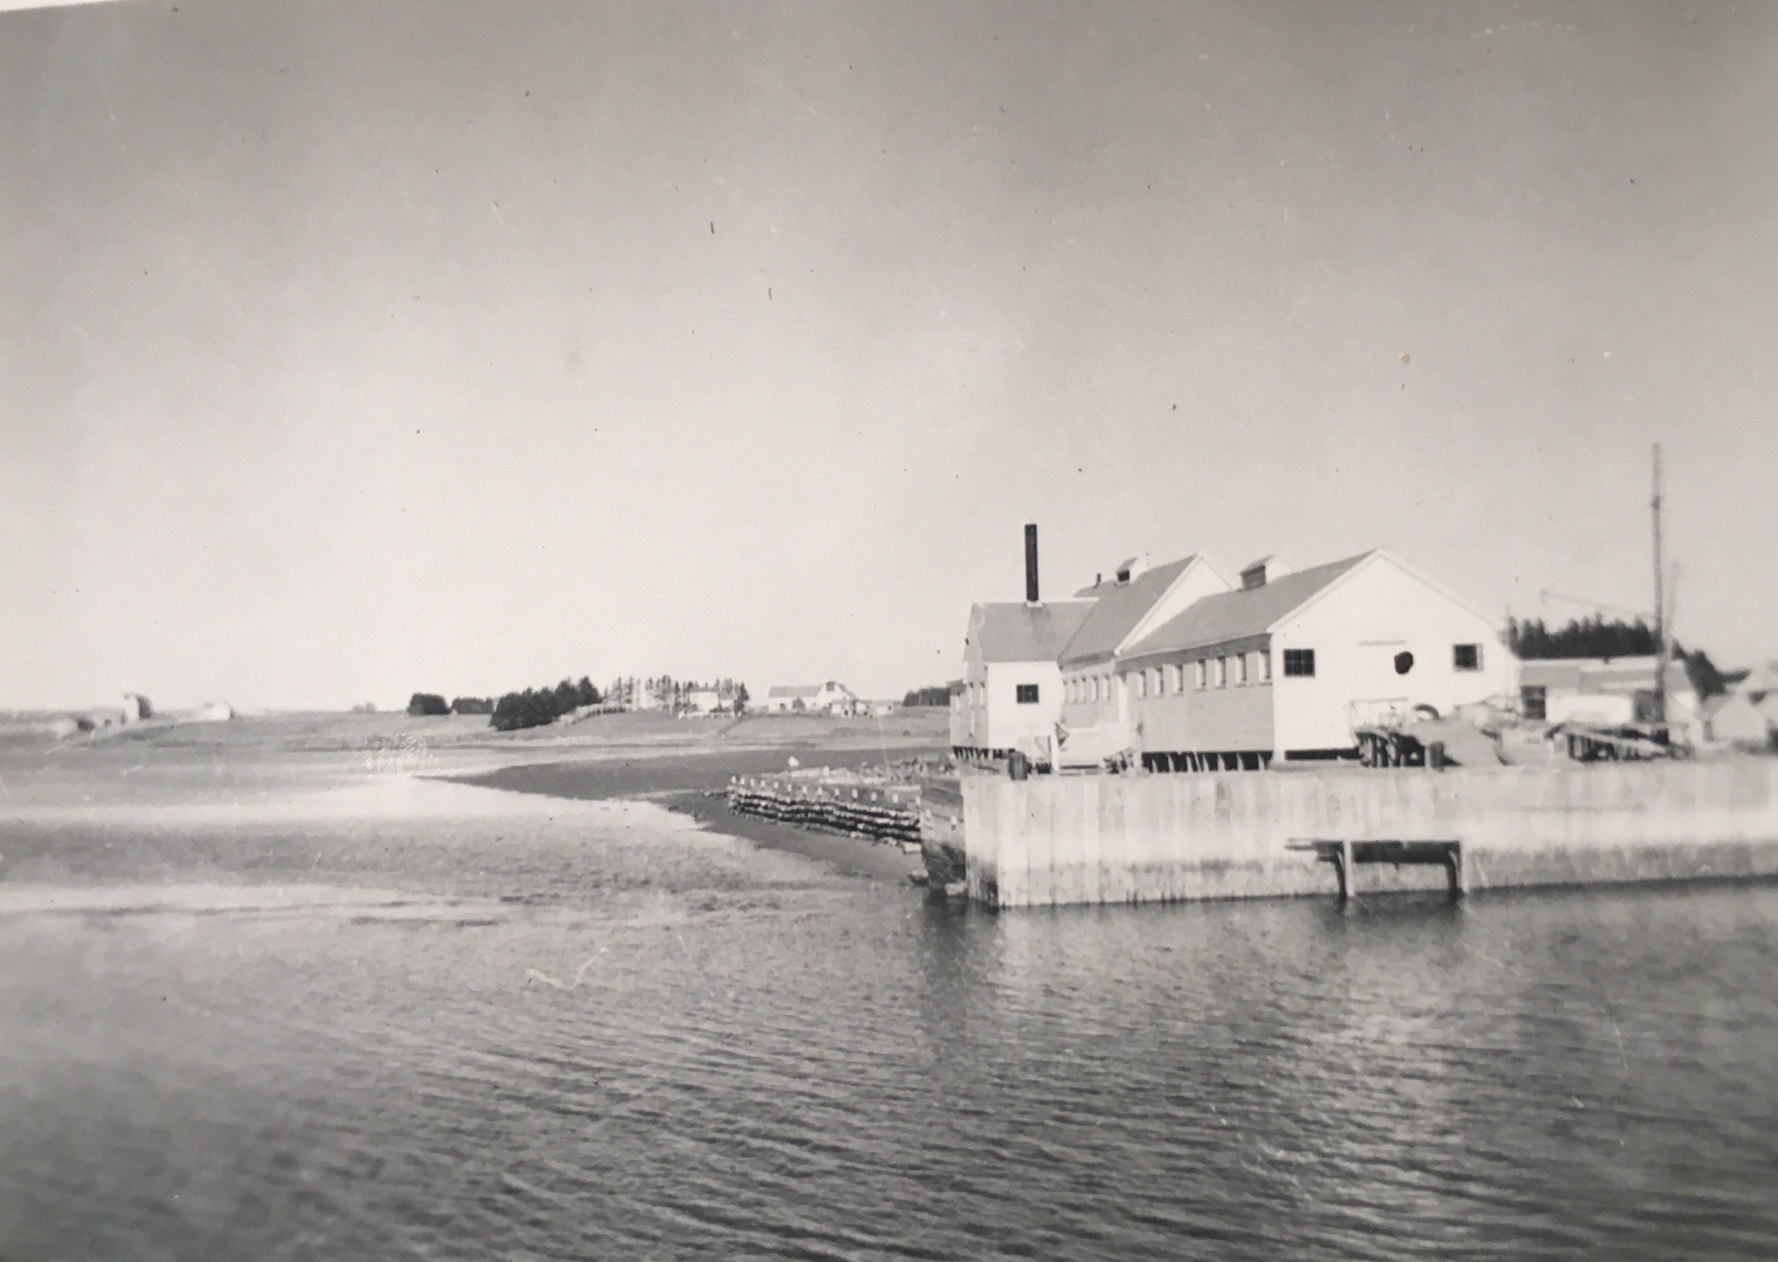 Johnston's lobster cannery, 1948. Photo: Ivan K. Mitchell